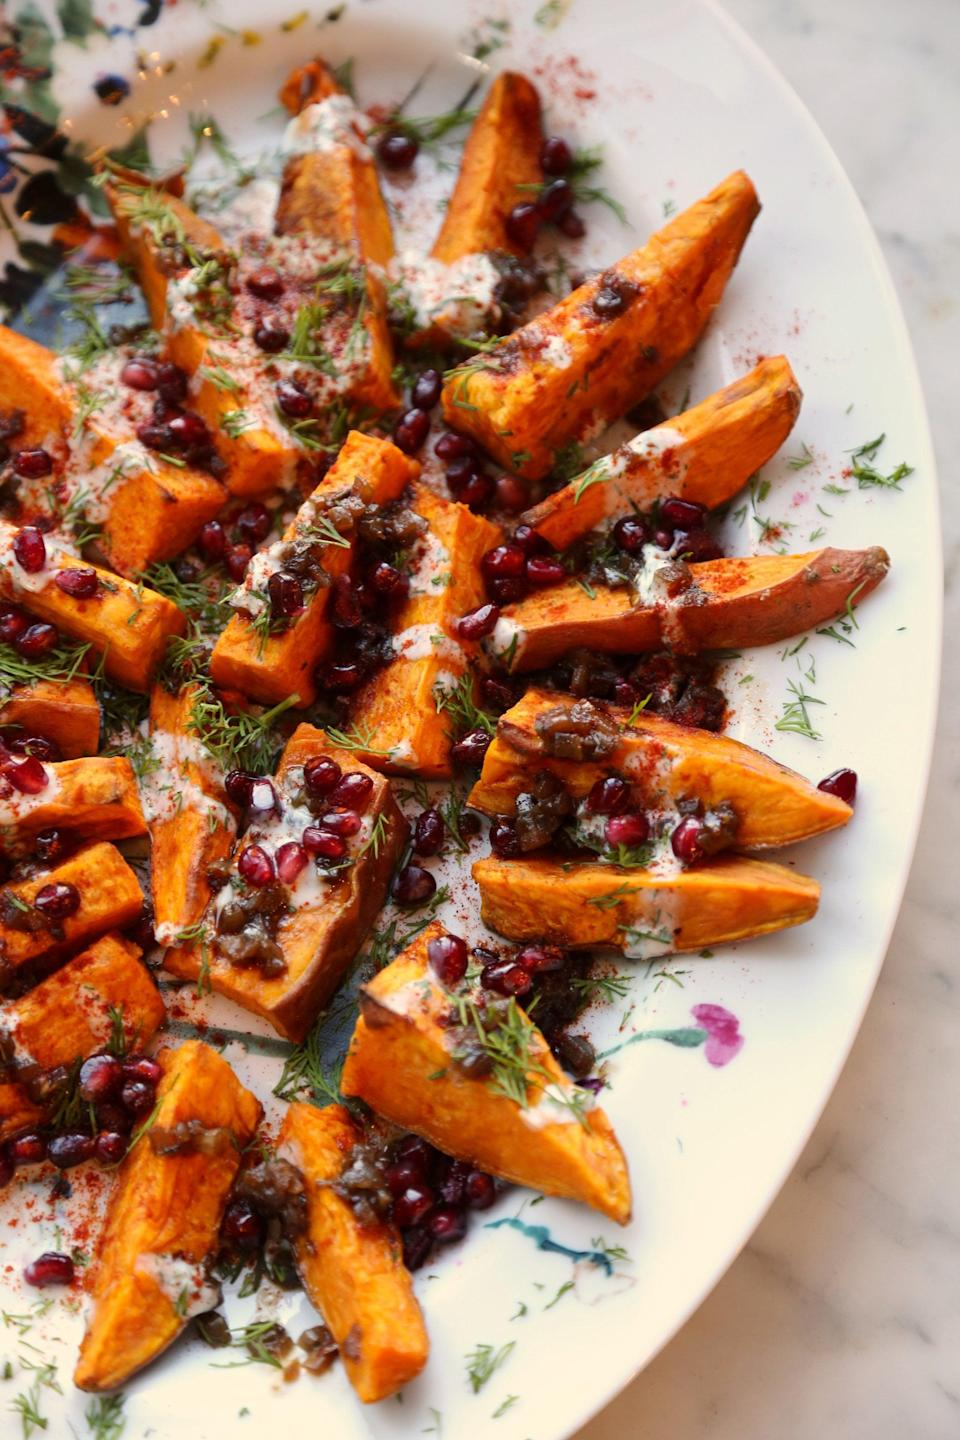 "<p><strong>Get the recipe: </strong><a href=""https://www.popsugar.com/food/Padma-Lakshmi-Roasted-Sweet-Potatoes-Recipe-42644806"" class=""link rapid-noclick-resp"" rel=""nofollow noopener"" target=""_blank"" data-ylk=""slk:roasted sweet potatoes with balsamic onion jam"">roasted sweet potatoes with balsamic onion jam</a></p>"